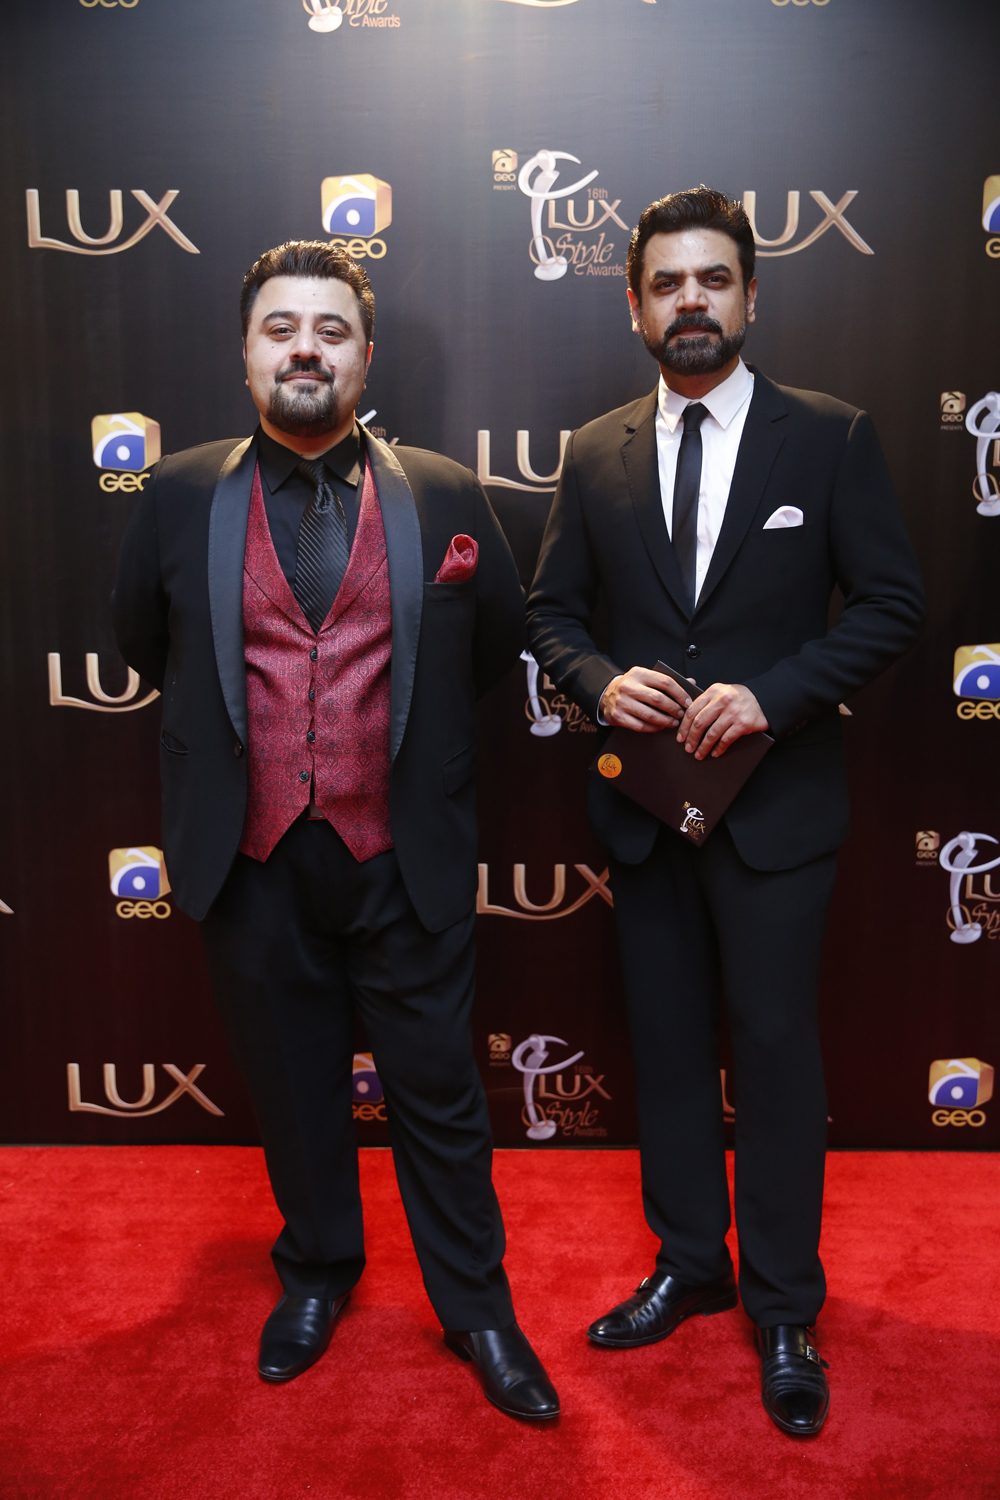 Ahmed Ali Butt and Vasay Chaudhry